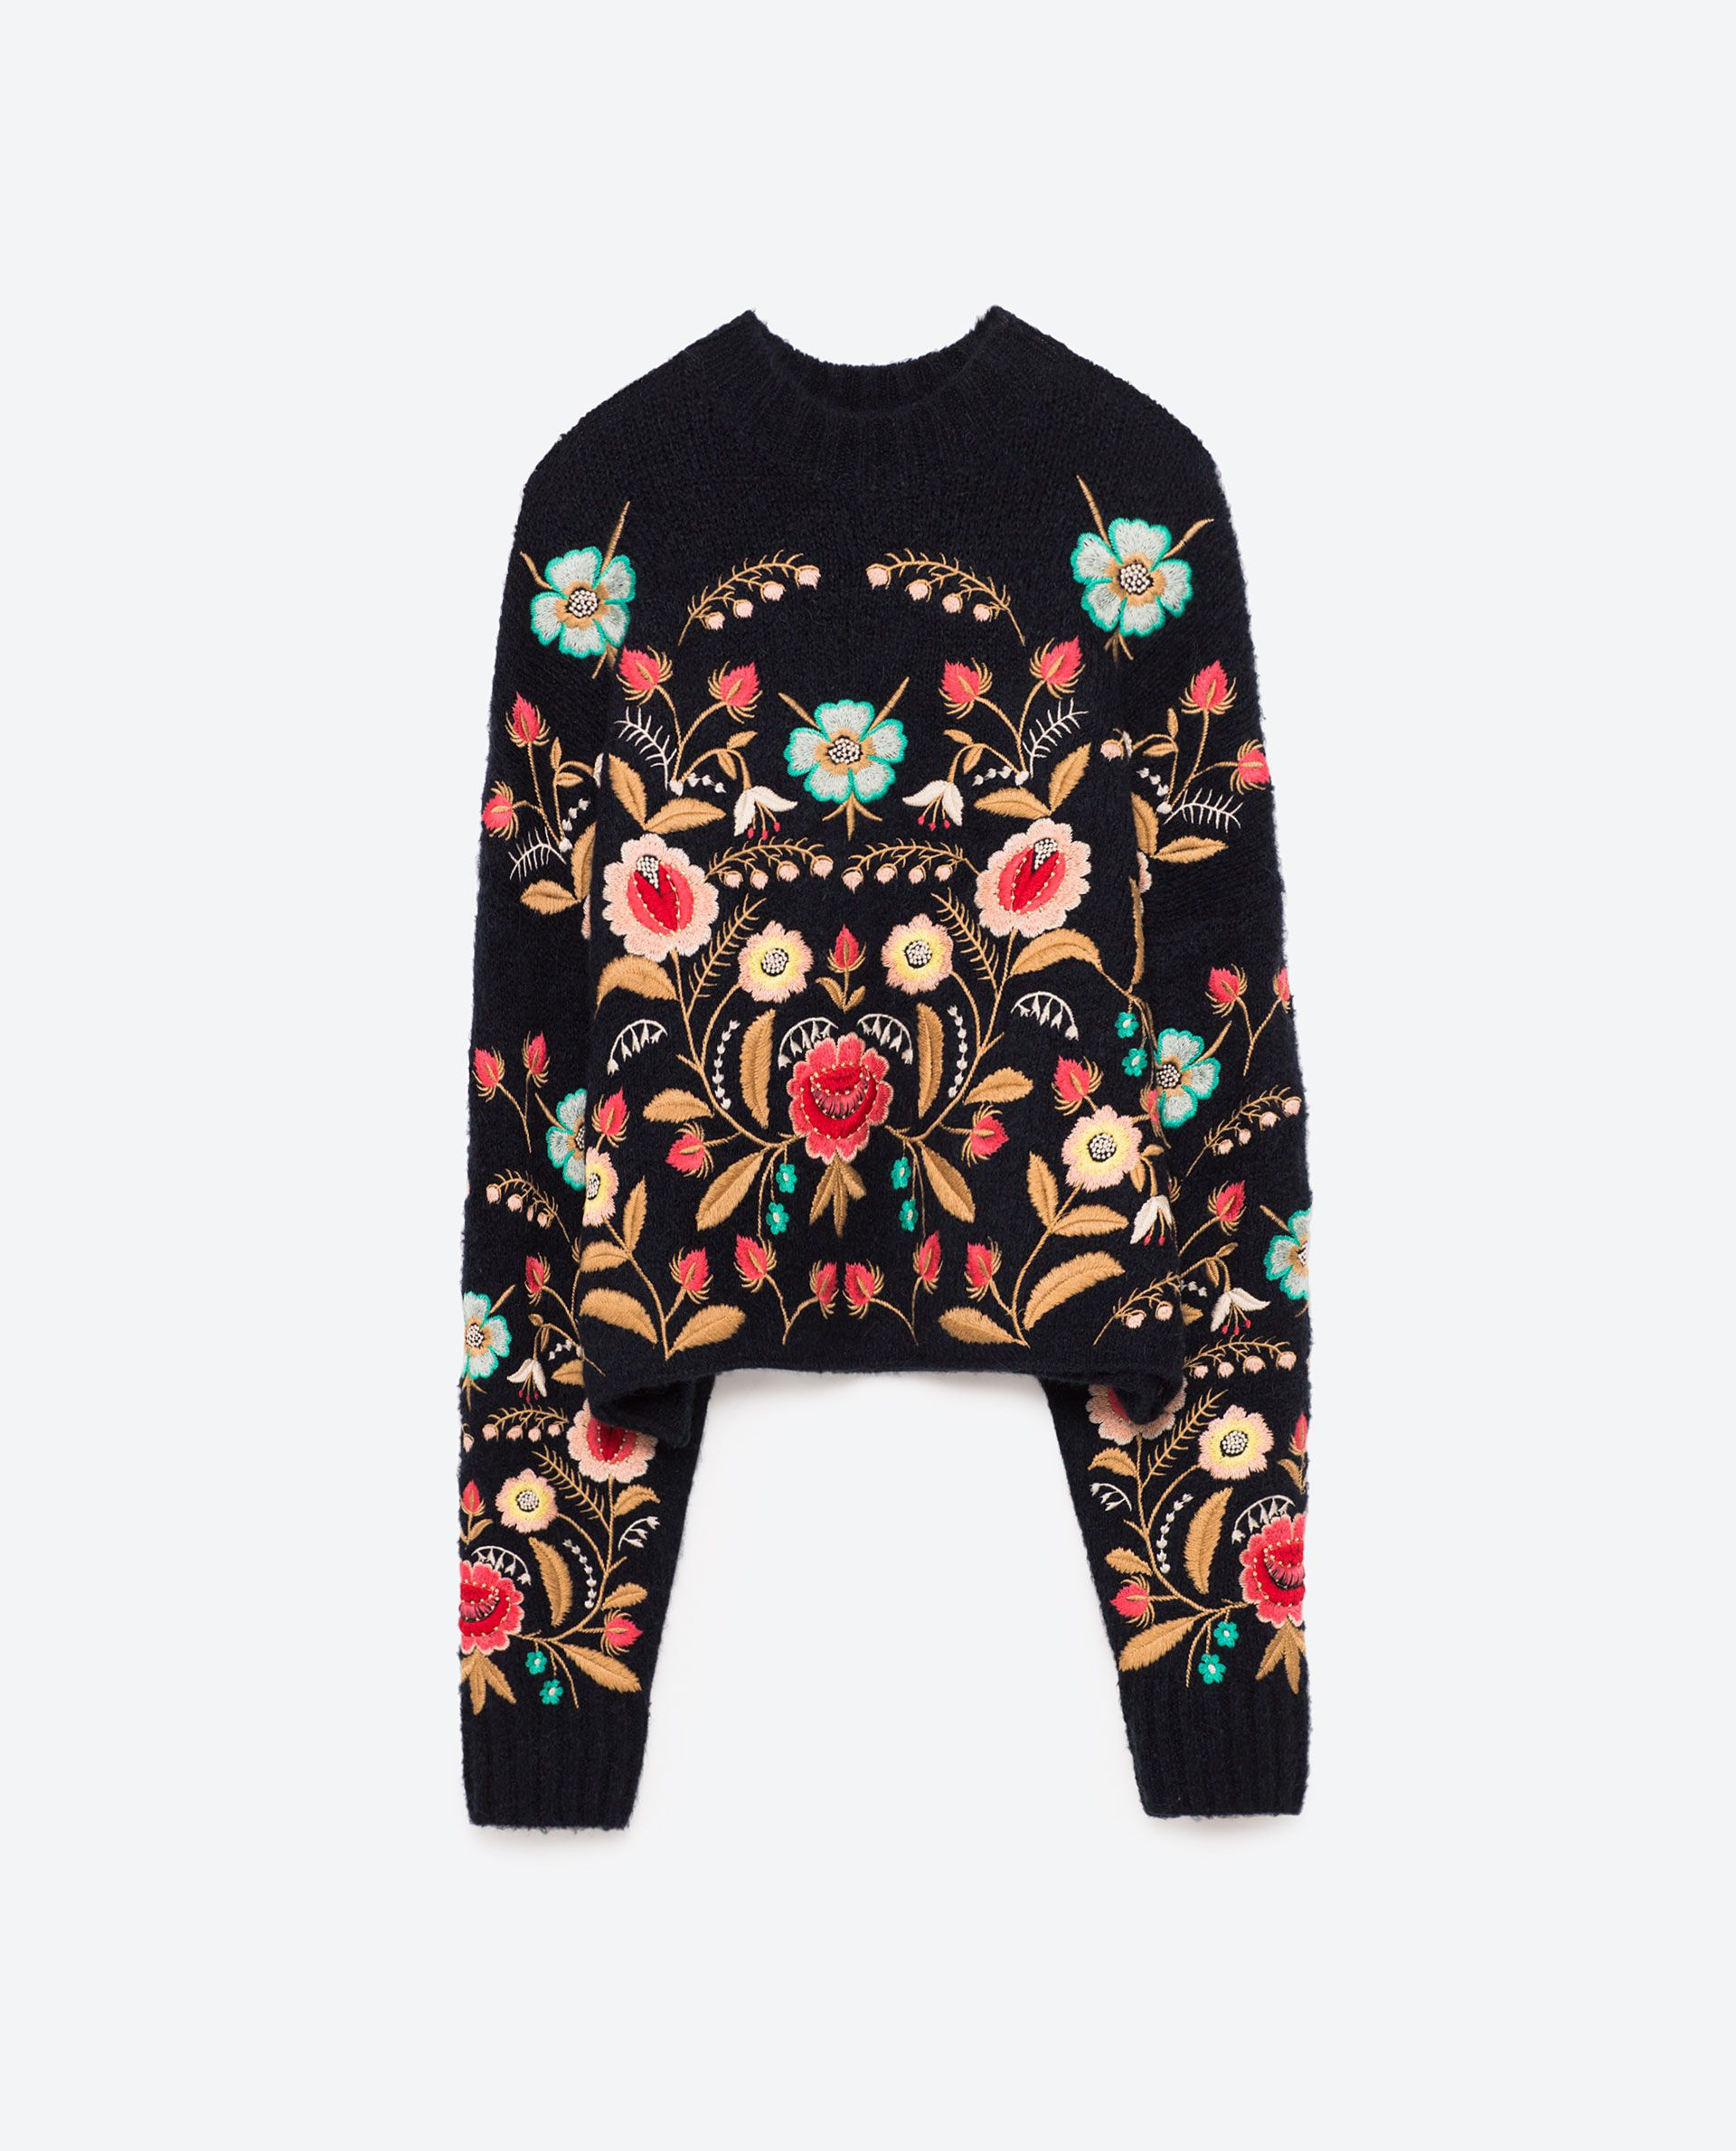 7cff89269bec07 Image 8 of FLORAL EMBROIDERED SWEATER from Zara